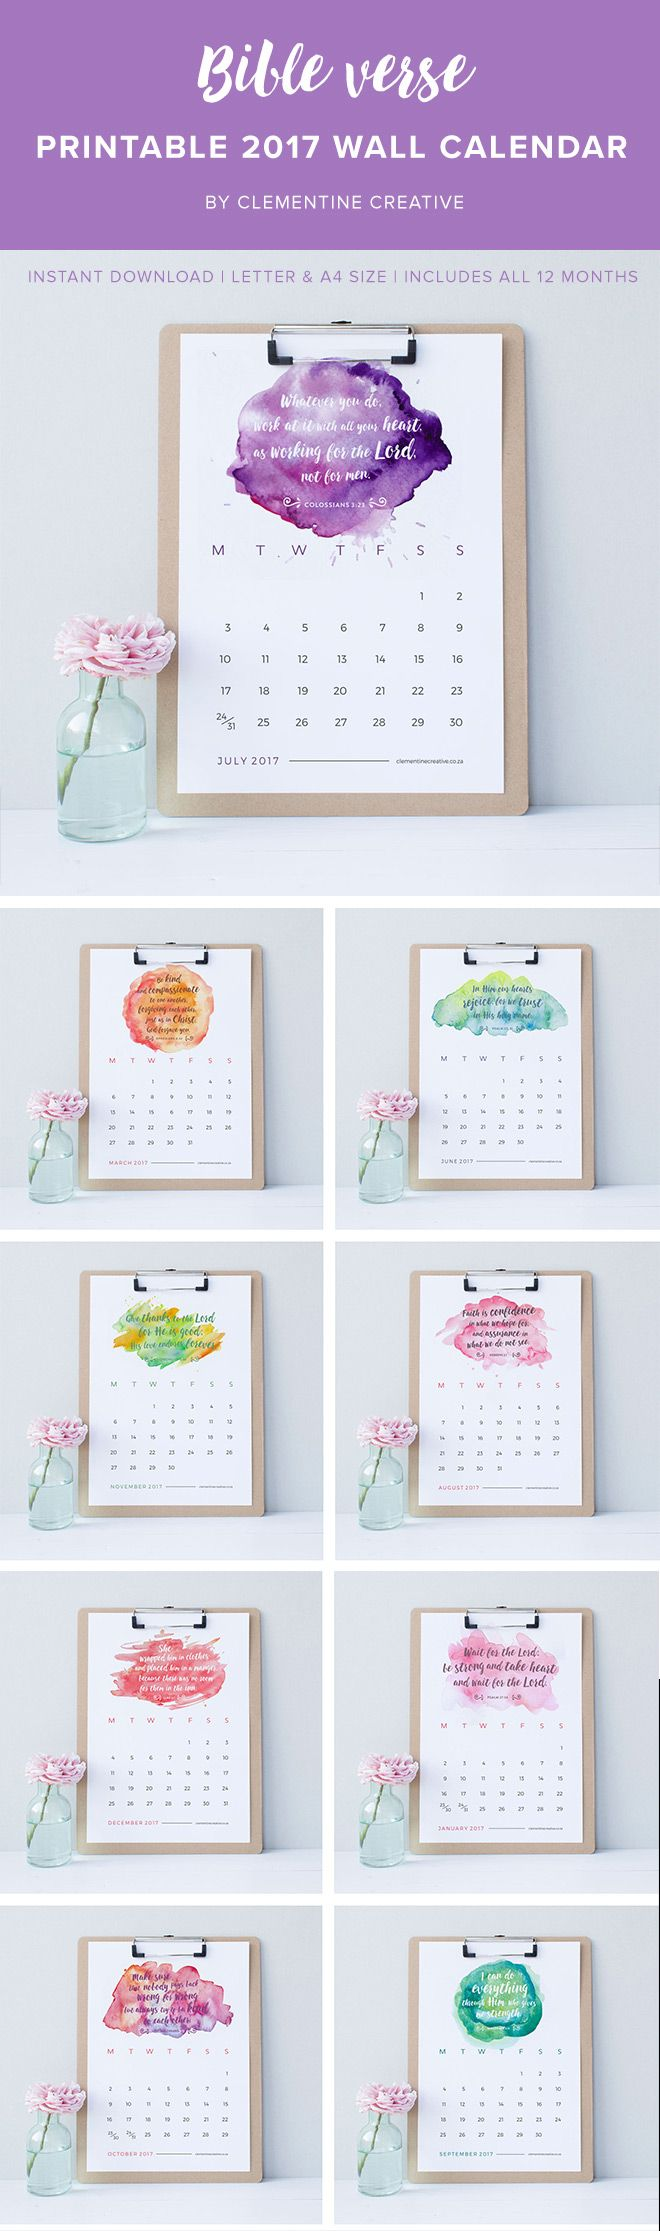 Be inspired every day with this printable 2017 wall calendar with a new Bible verse for each month. Download instantly, print, and decorate your workspace!